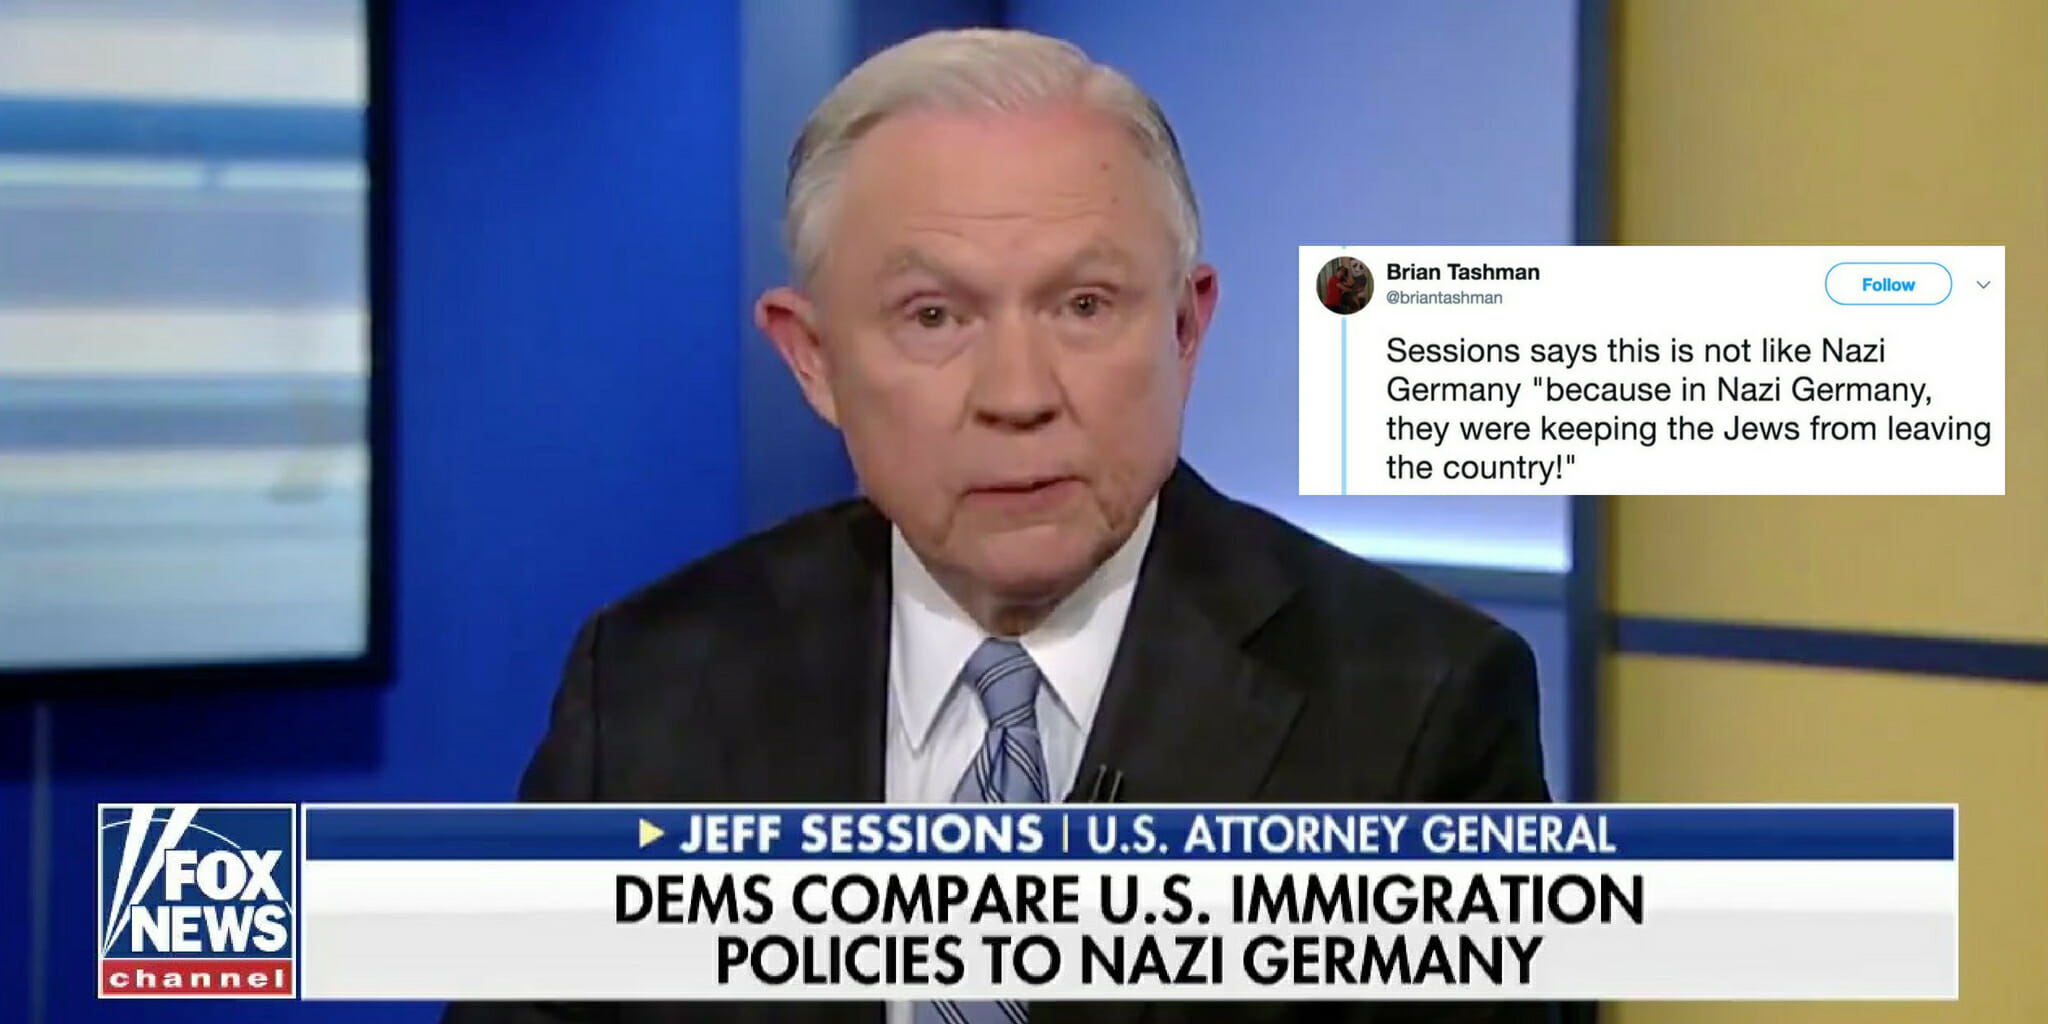 Jeff Sessions refutes assertion that his immigration policy is like Nazi Germany.